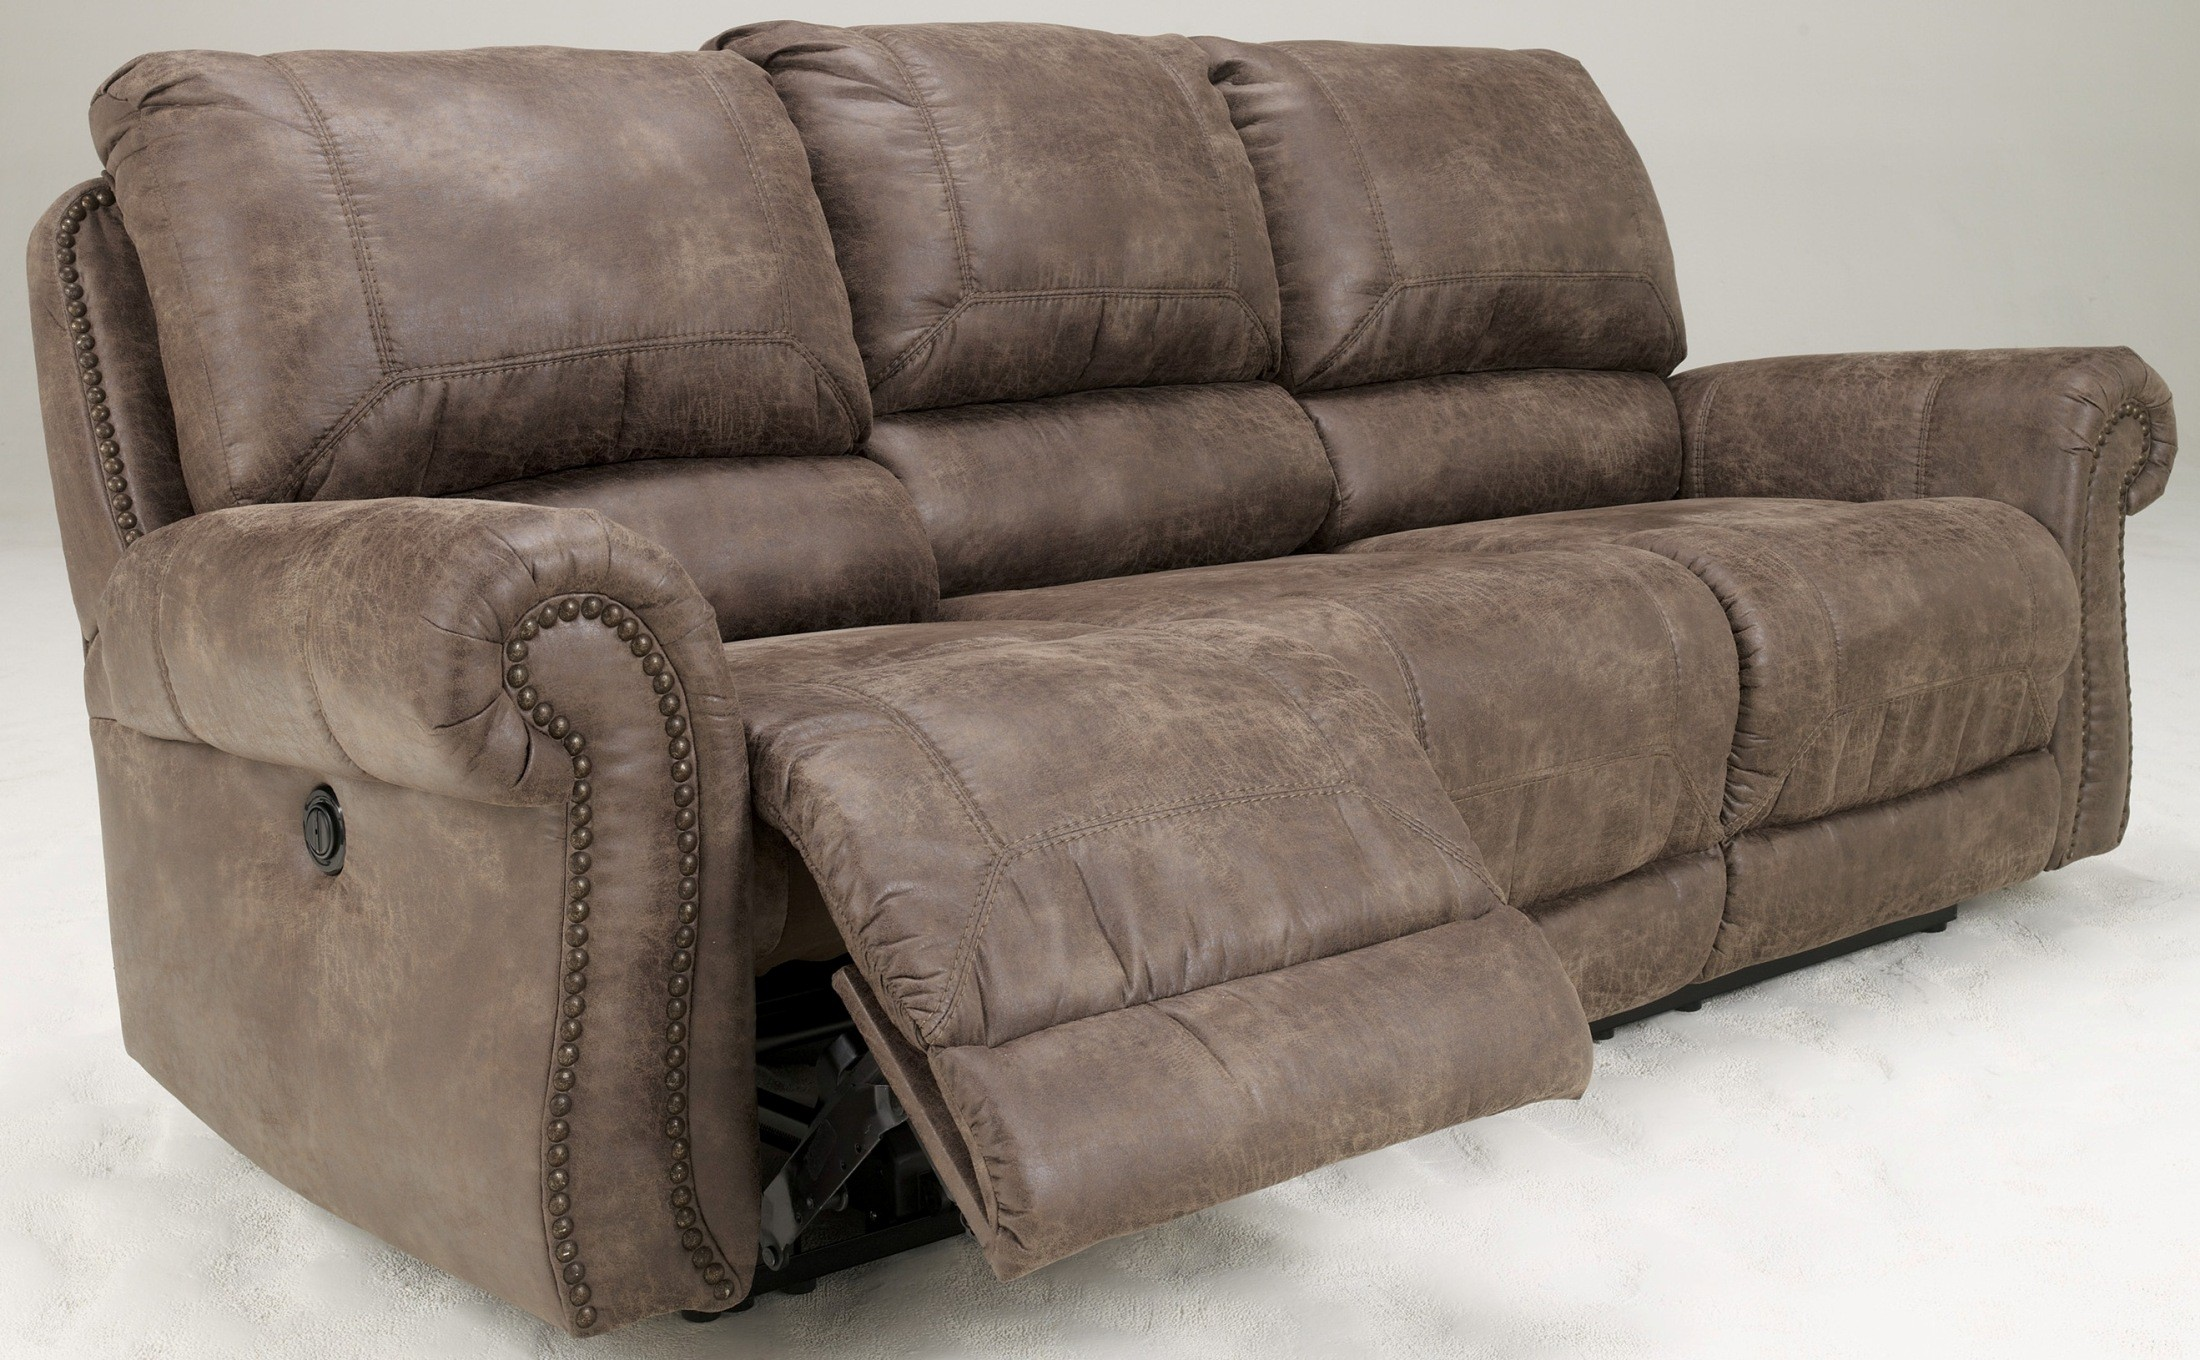 273646 & Oberson Gunsmoke Power Reclining Sofa from Ashley (7410087 ... islam-shia.org